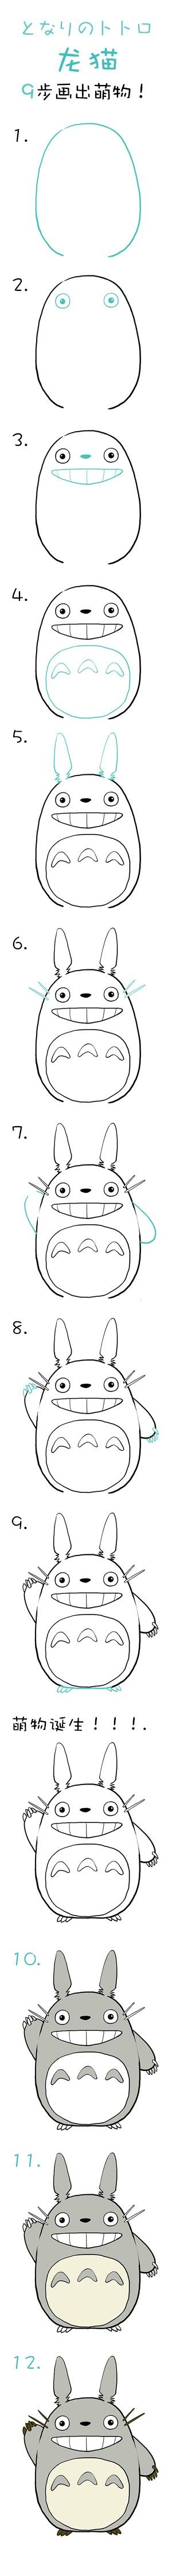 Learn how to draw TOTORO (((o(*゚▽゚*)o)))